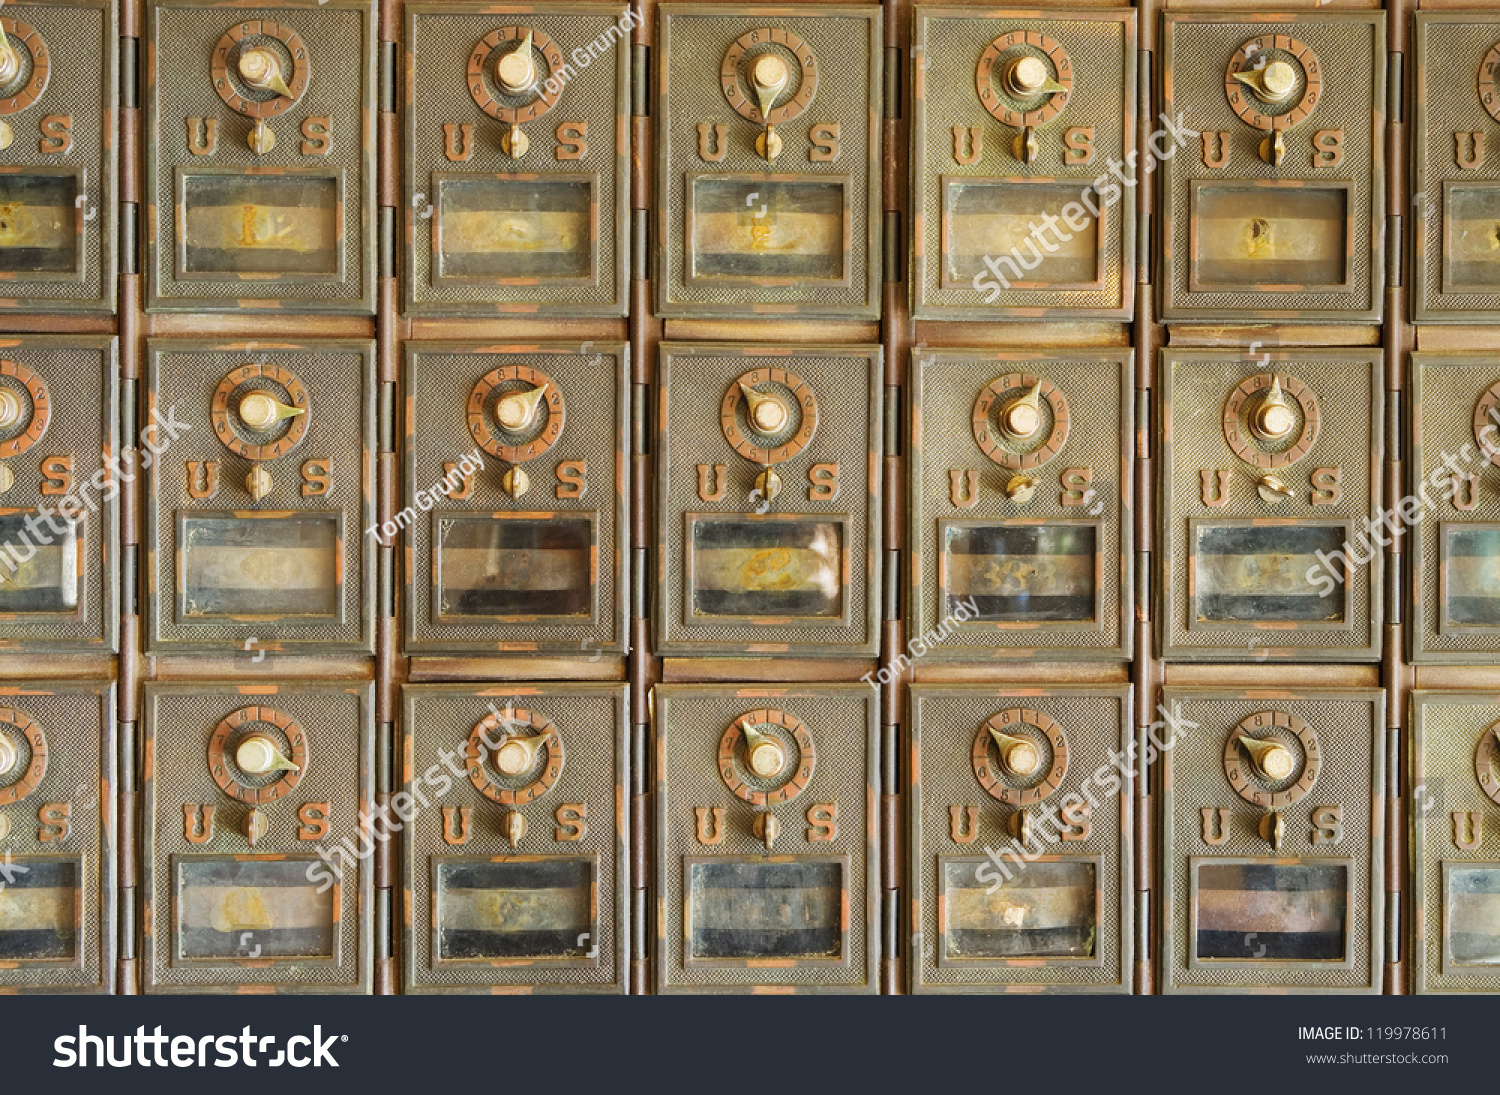 Old Brass Us Mail Pigeonhole Mailboxes Stock Photo